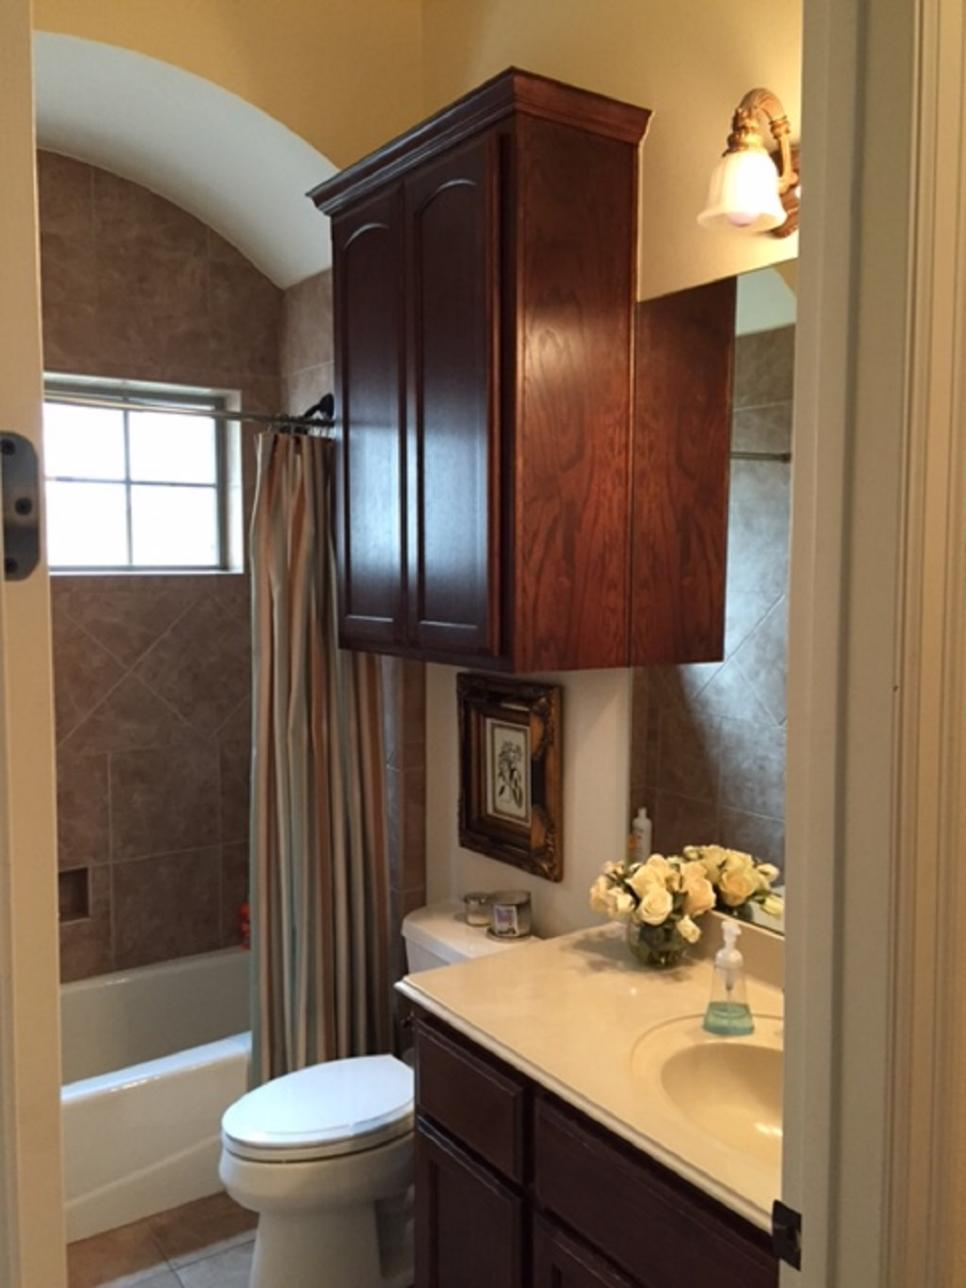 Bathroom Remodel Before And After Pictures Beforeandafter Bathroom Remodels On A Budget  Hgtv